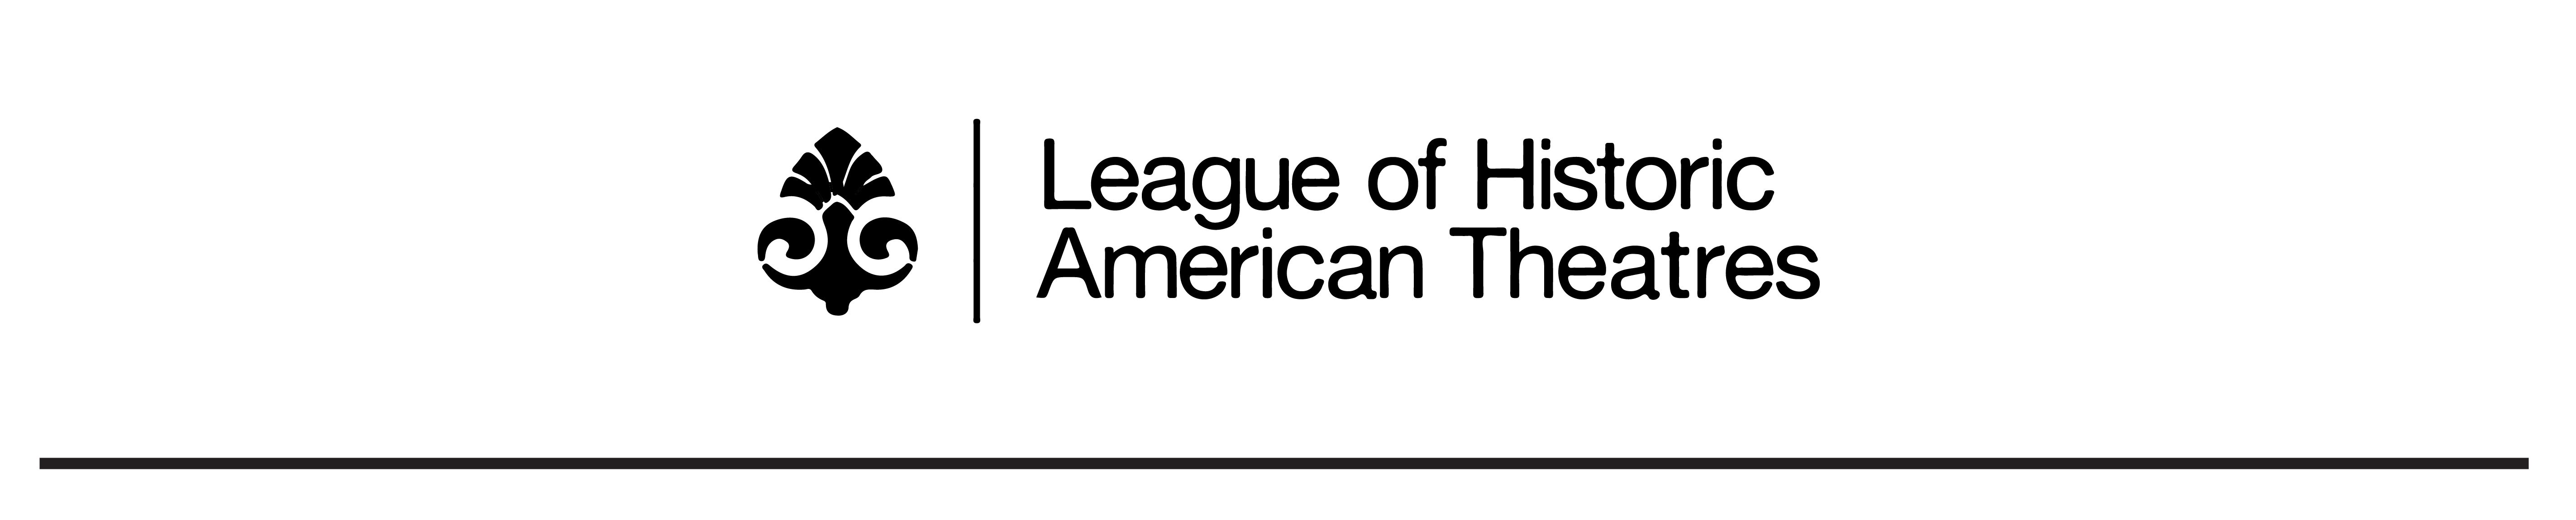 The League of Historic American Theatres